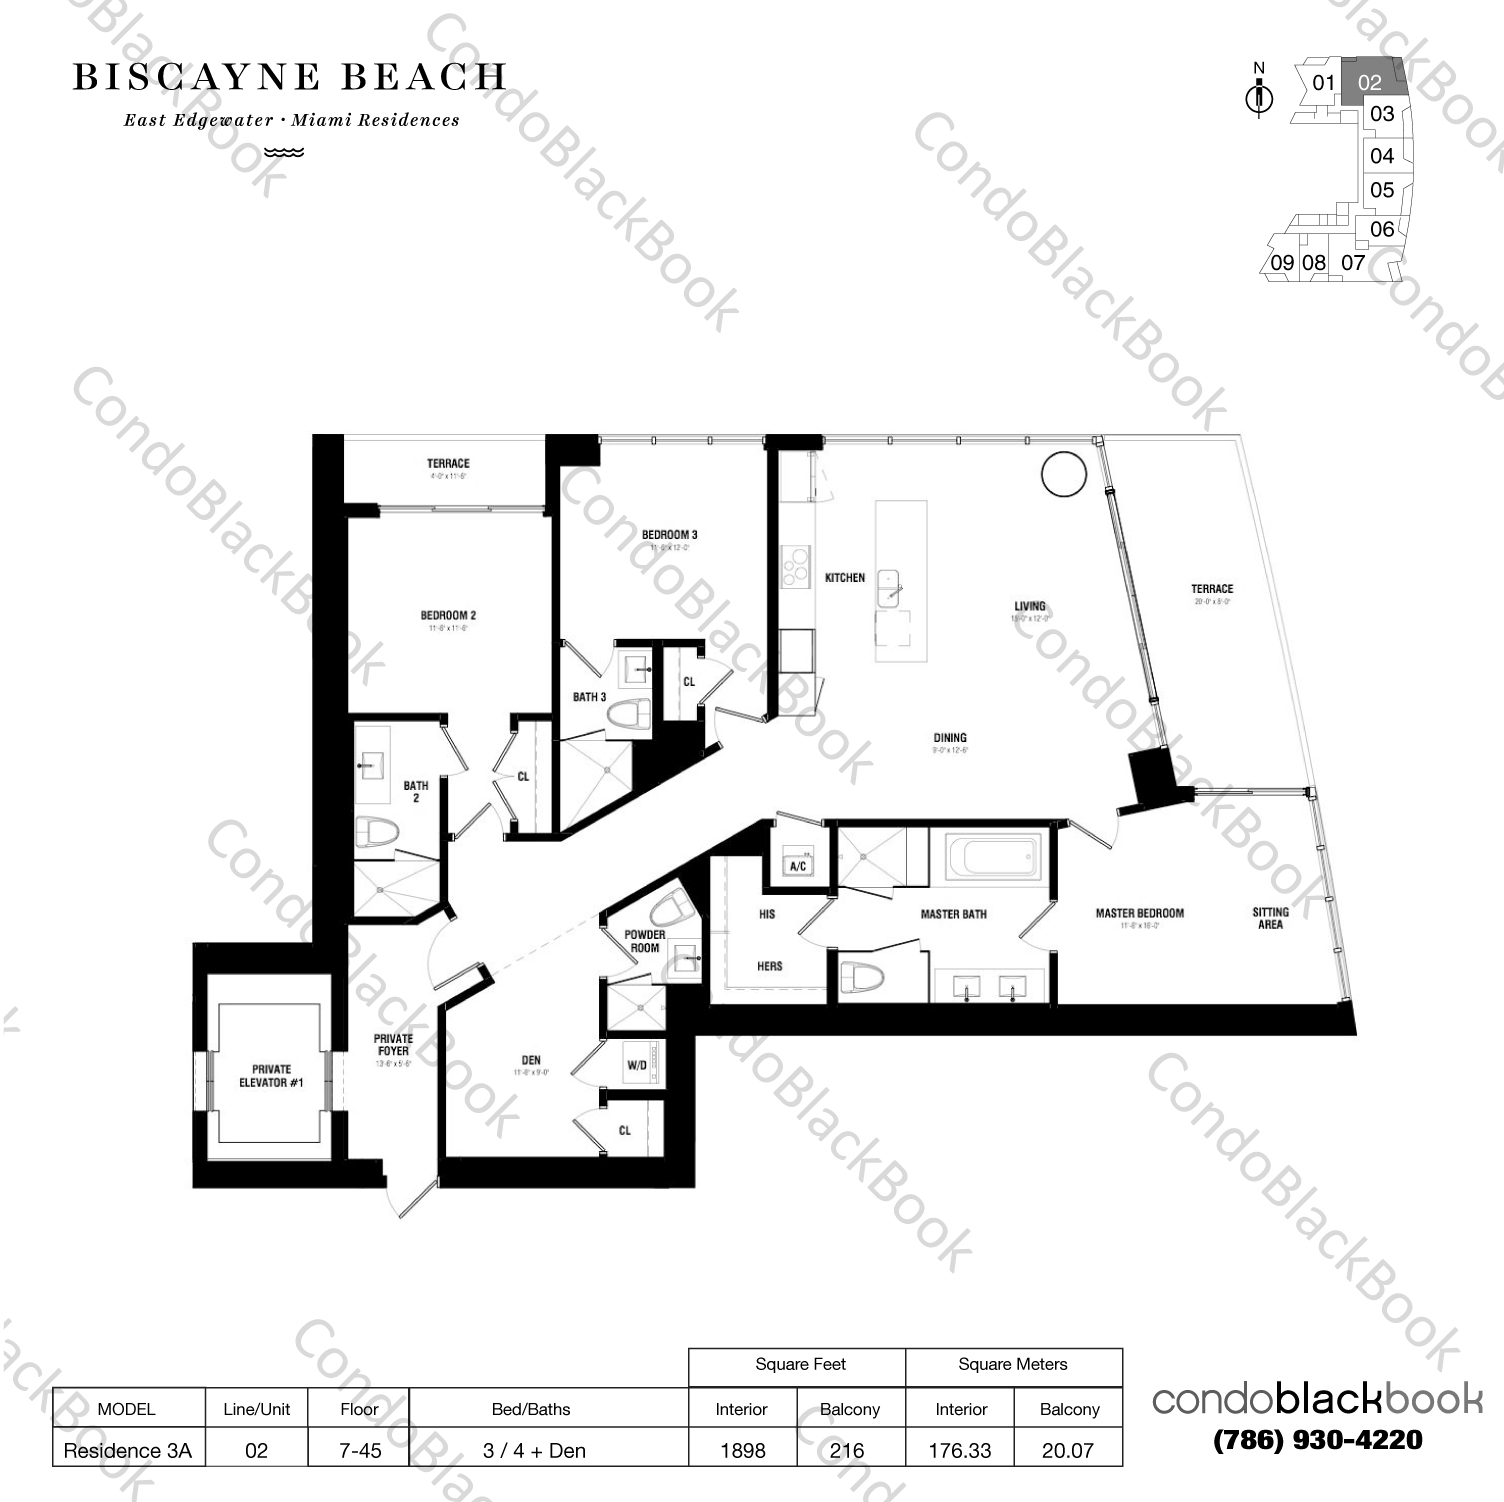 Biscayne beach unit 802 condo for sale in edgewater for Floor plans 900 biscayne